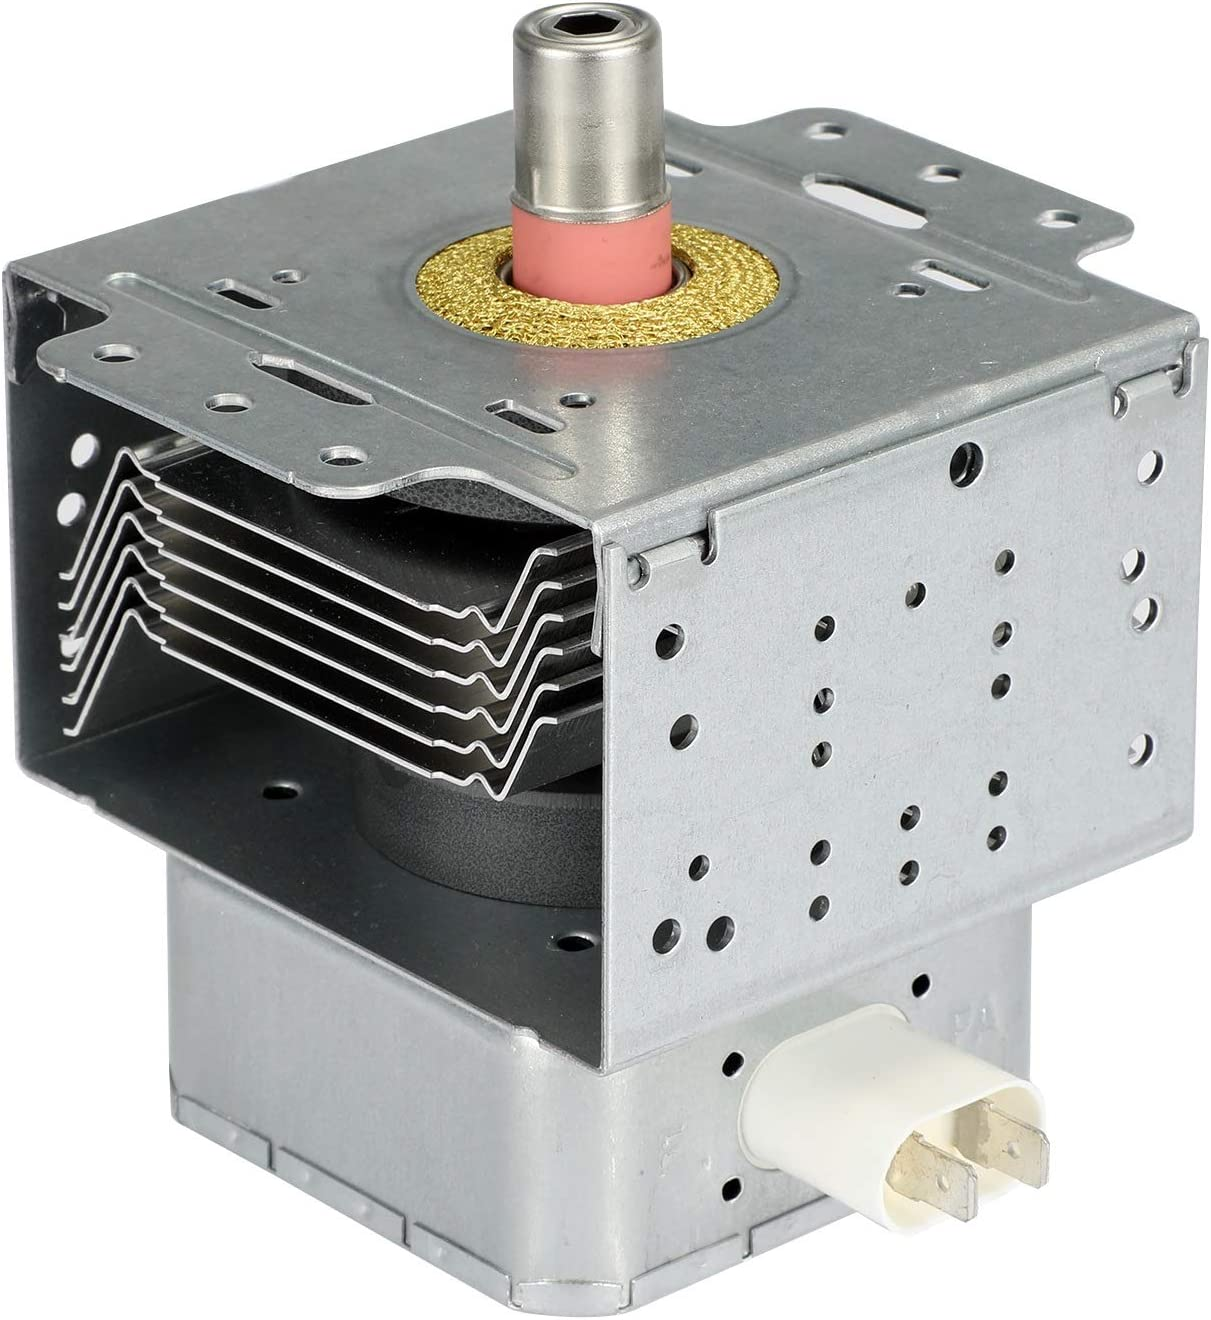 BlueCatELE 2M319 Microwave Magnetron Compatible for GE WB27X11211 and Midea Haier Galanz Microwave